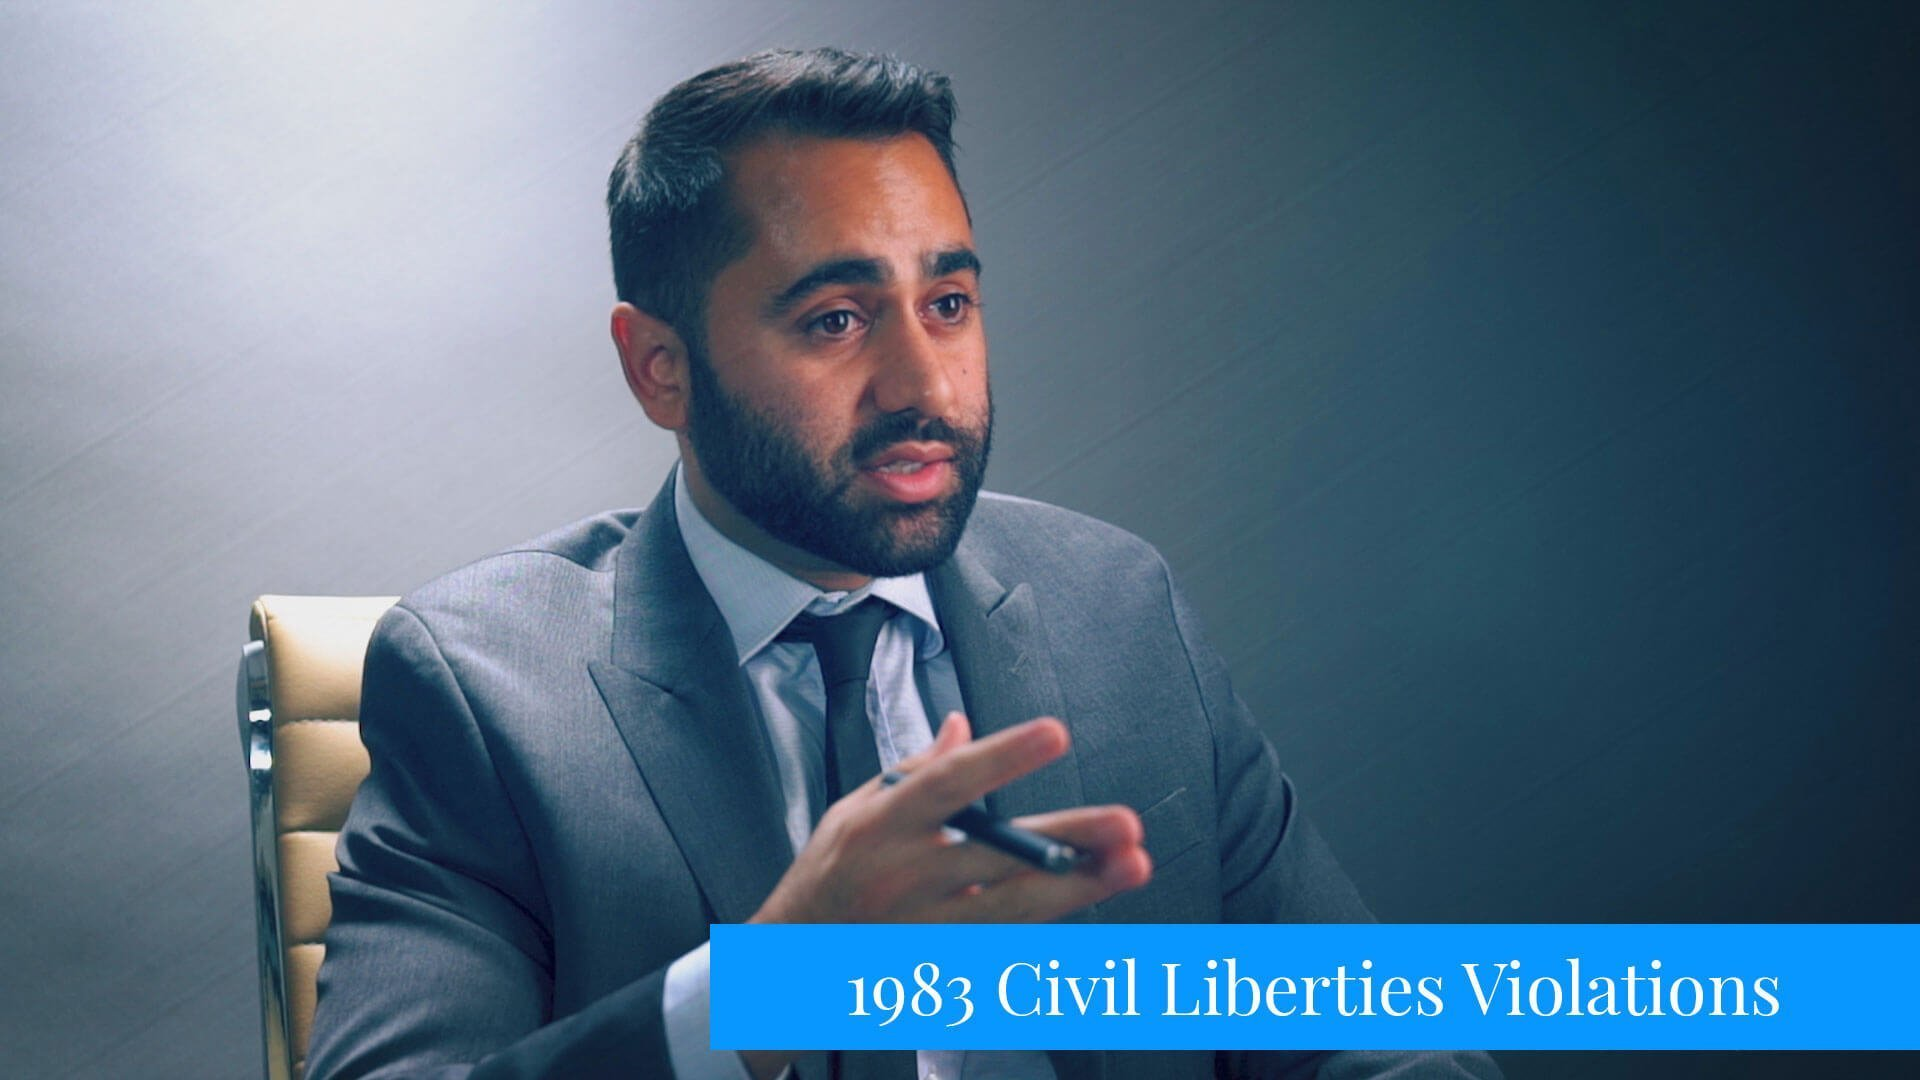 1983-Civil-Liberties-Violations